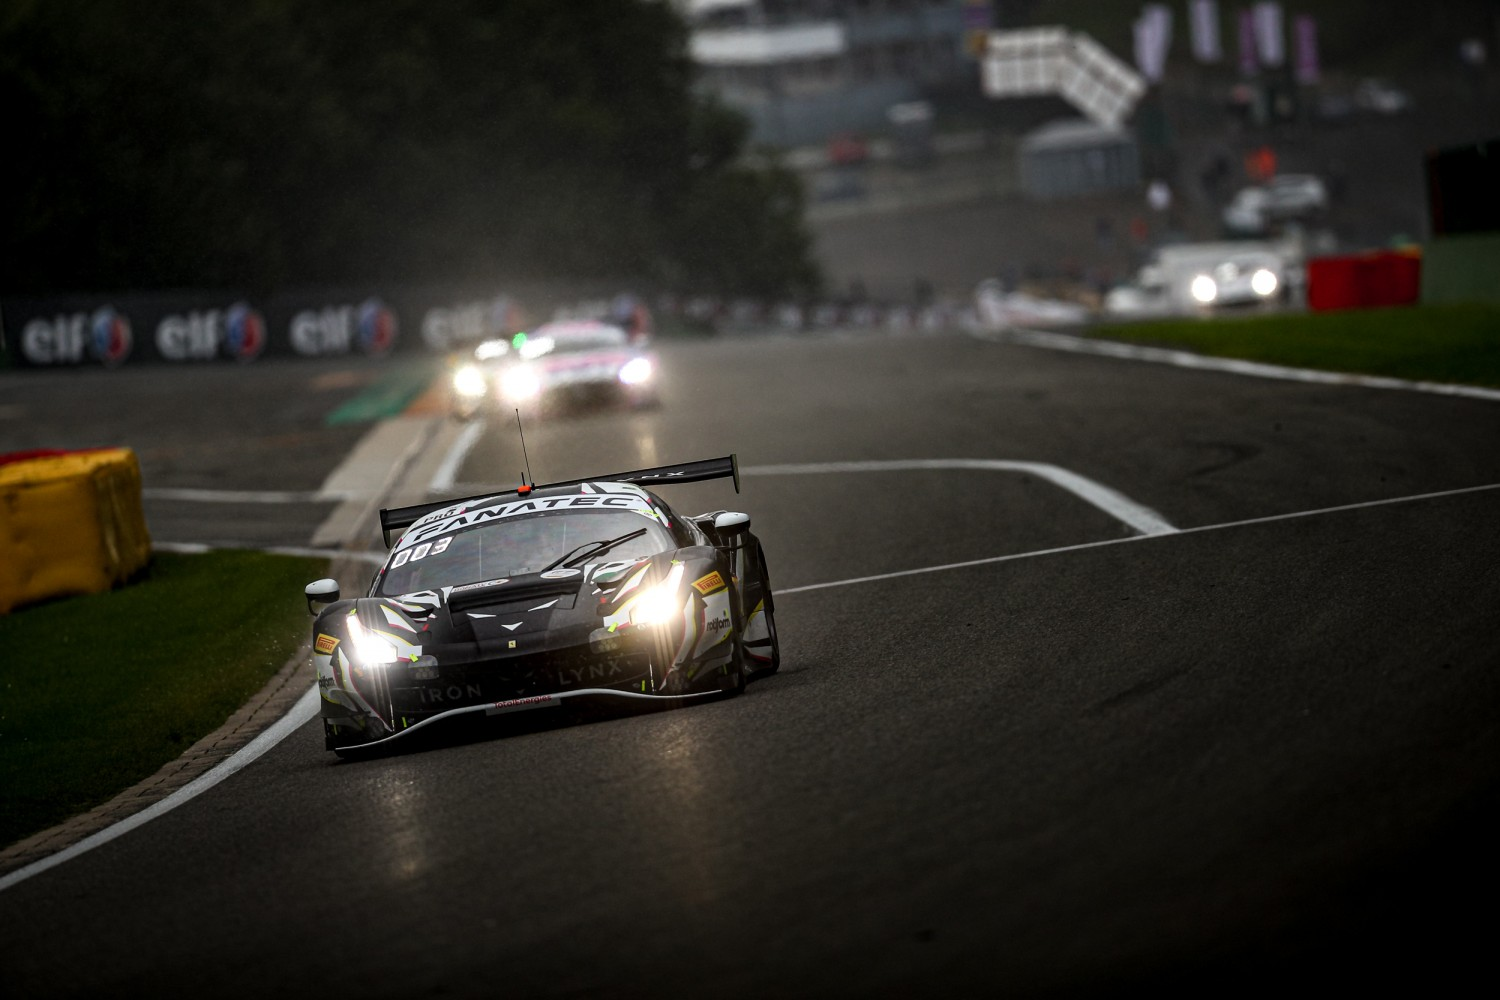 Iron Lynx Ferrari leads TotalEnergies 24 Hours of Spa at one-quarter distance as darkness falls over the Ardennes